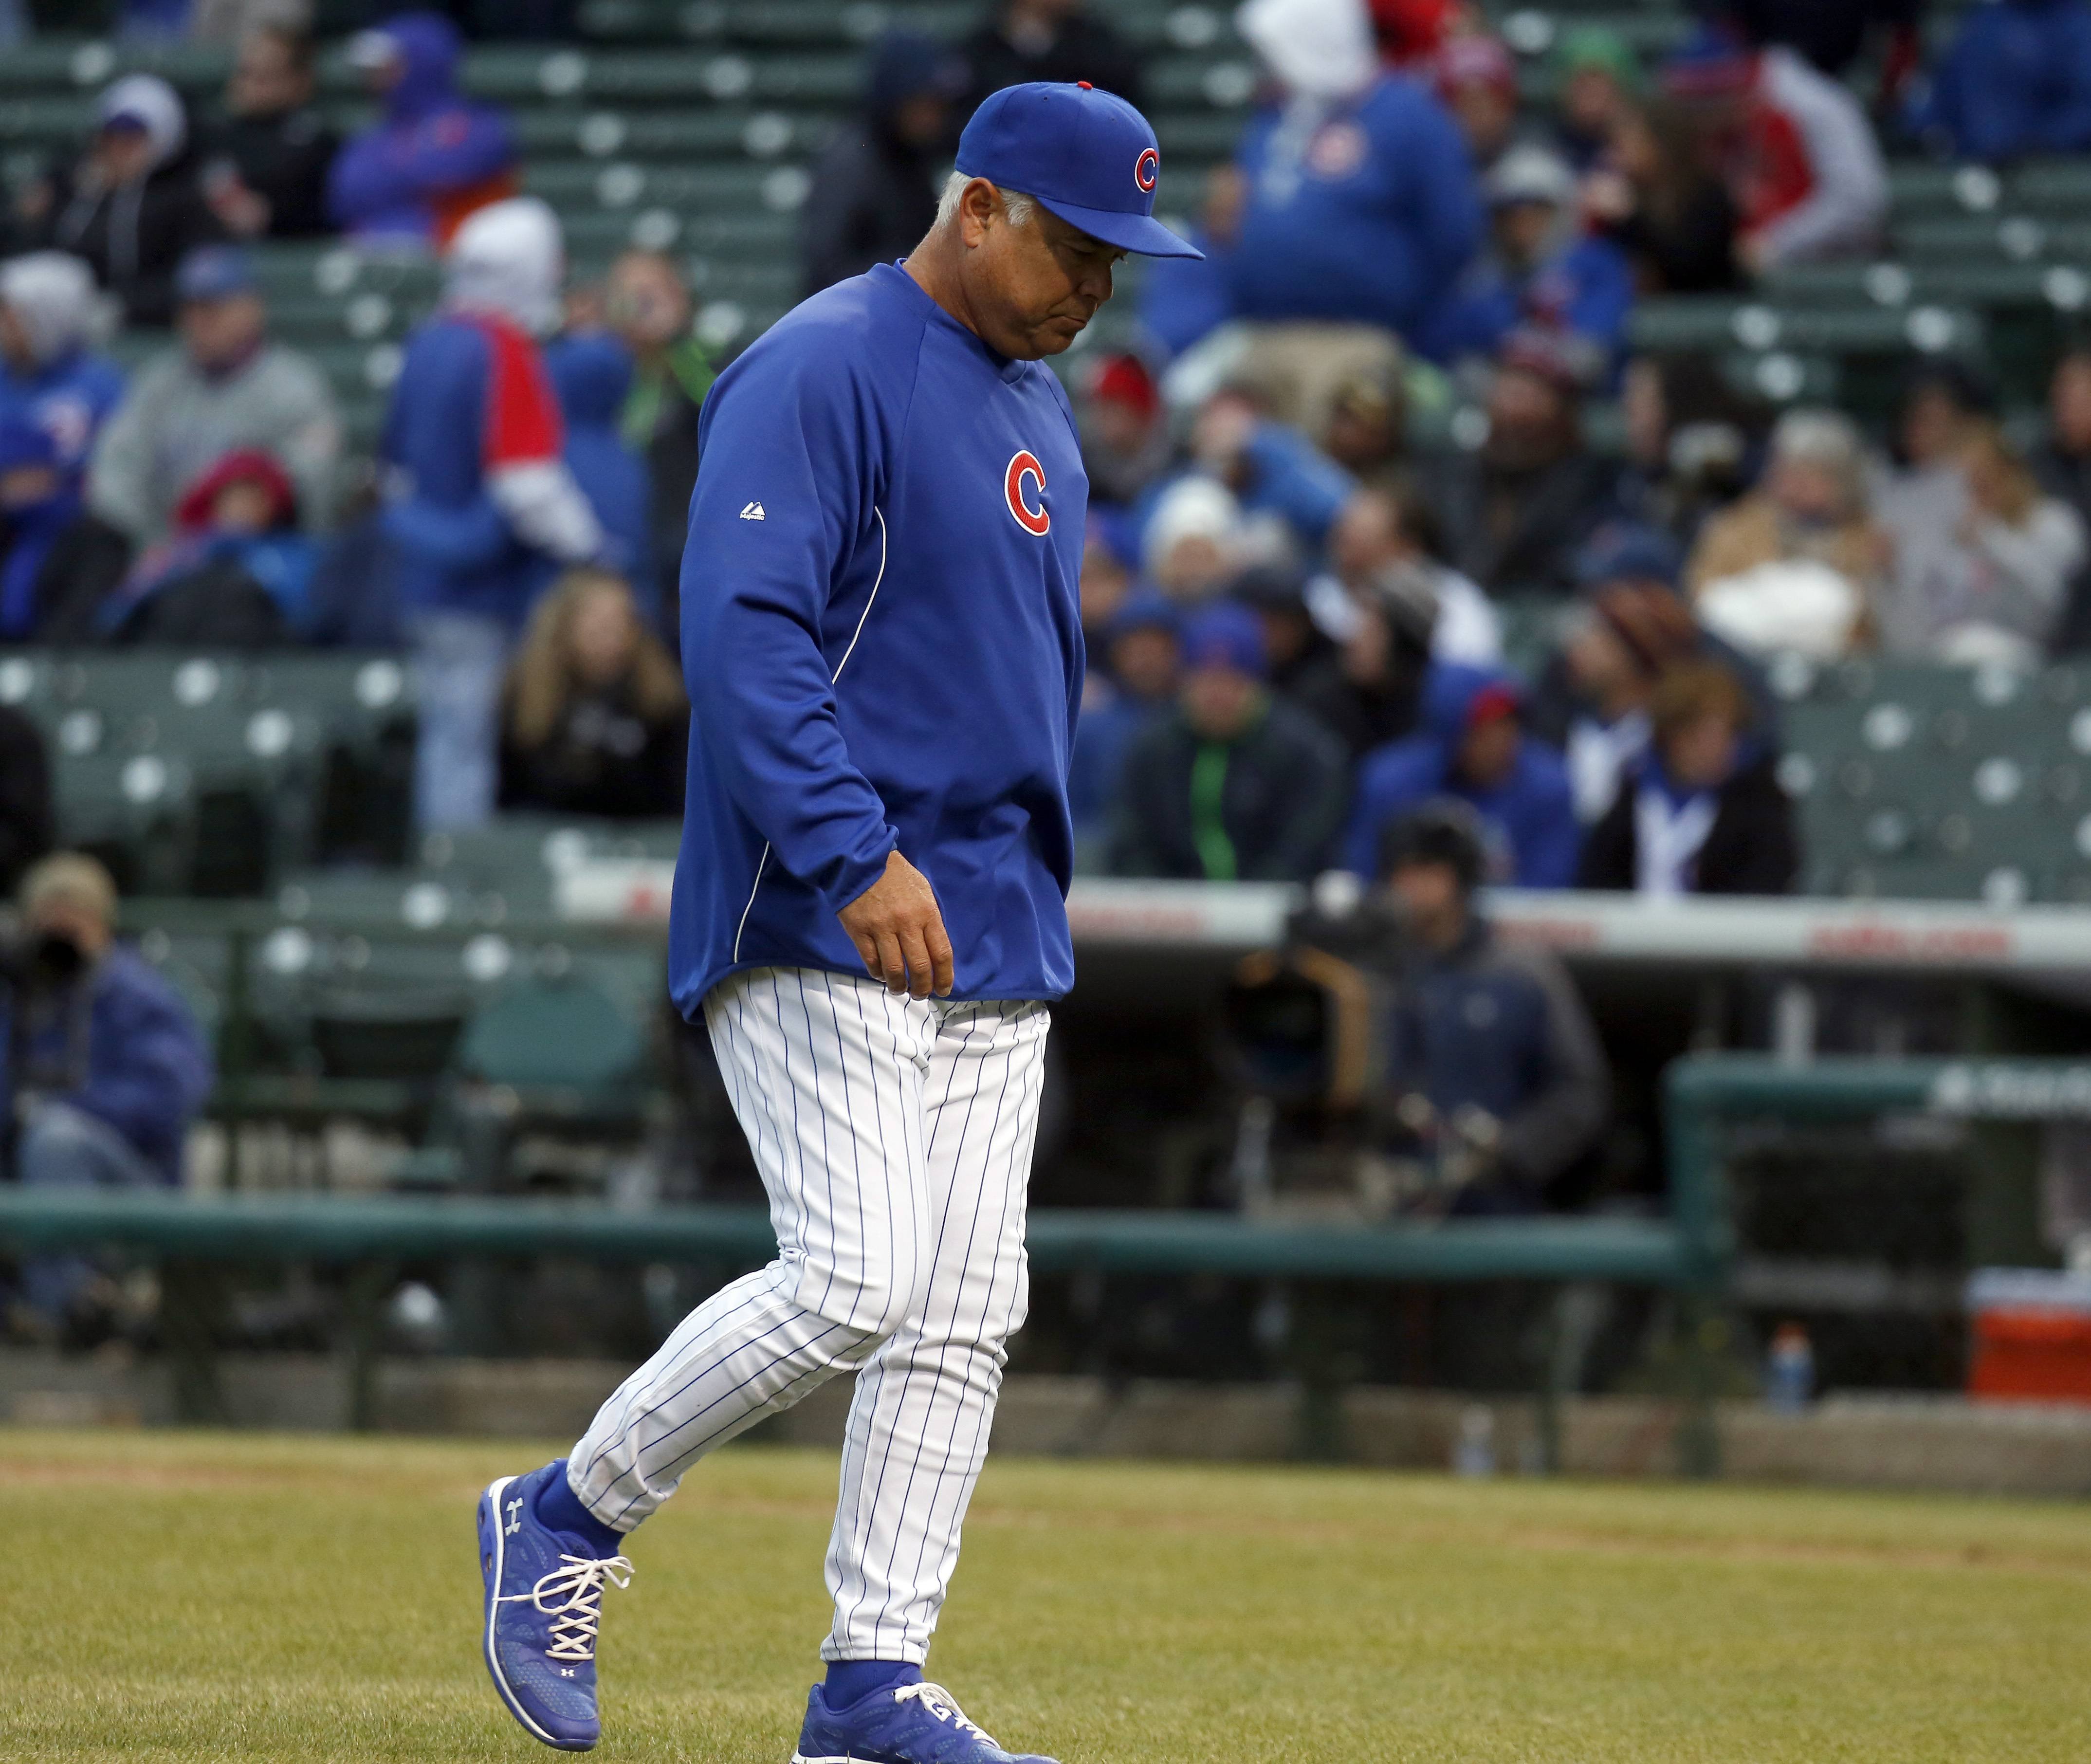 With instant replay in place, don't expect MLB managers like the Cubs' Rick Renteria to come kicking and screaming out of the dugout to protest a call. Now they need to find ways to stall while they wait to determine if the call warrants a challenge.